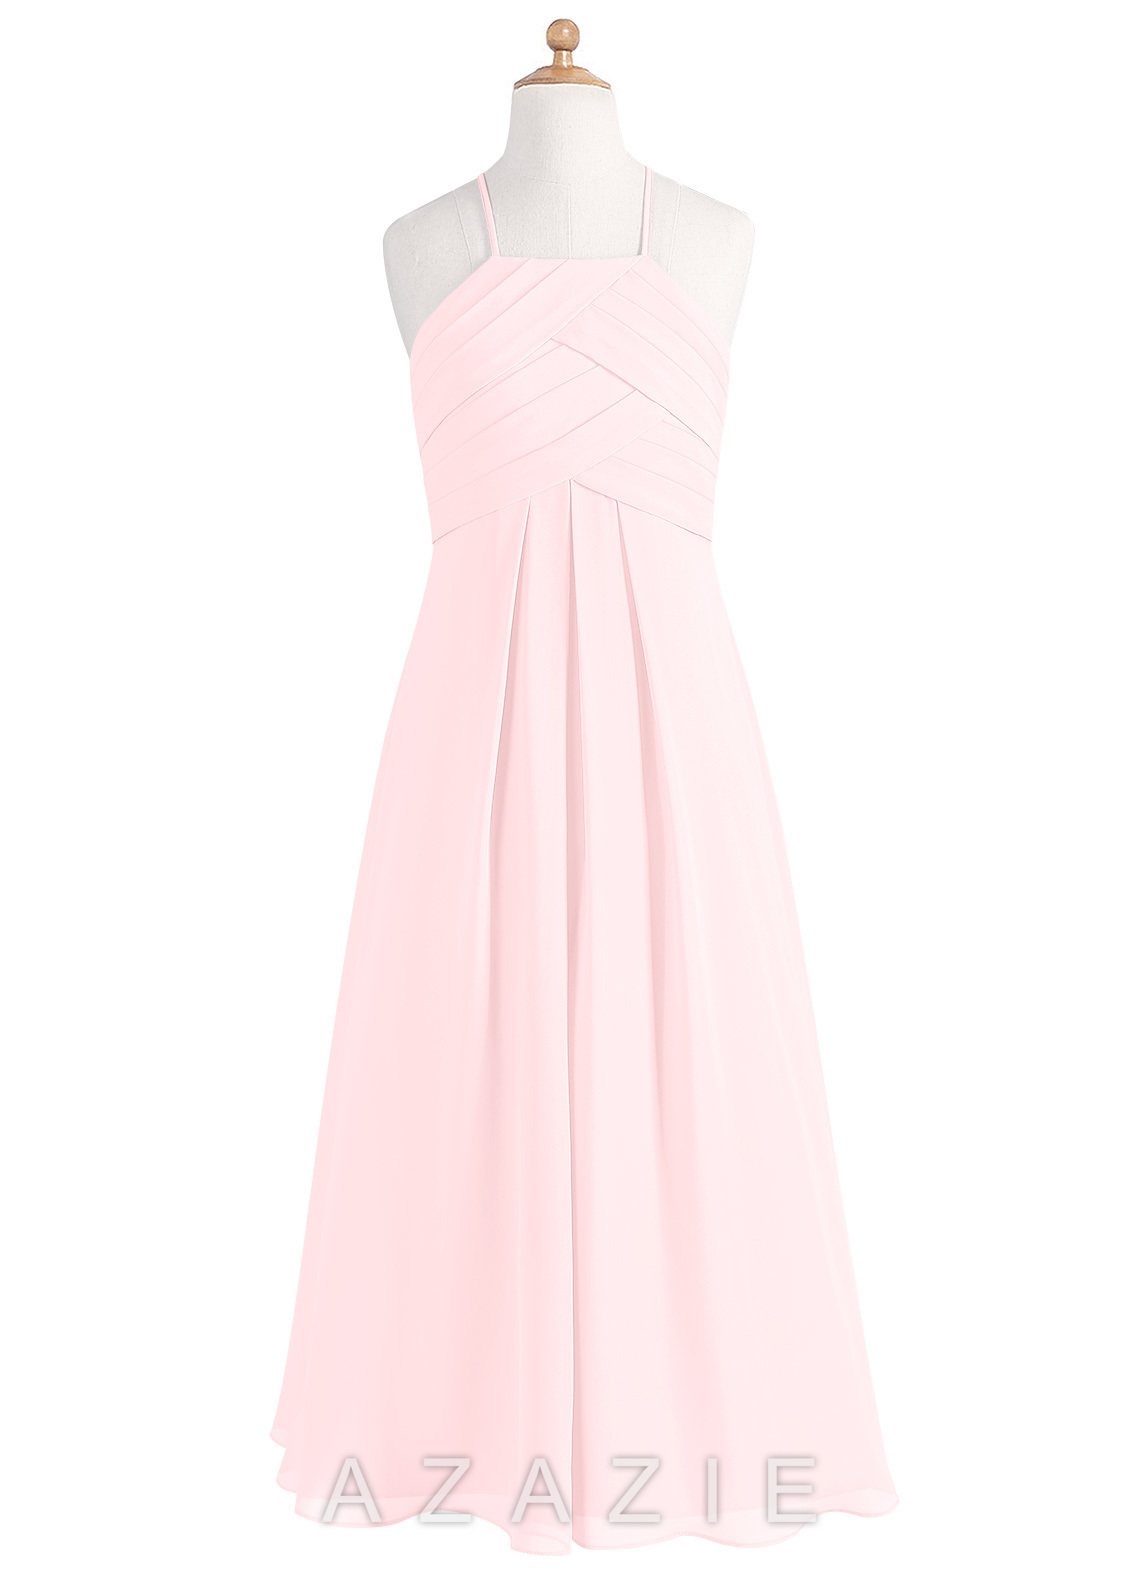 Azazie Ginger JBD Junior Bridesmaid Dress